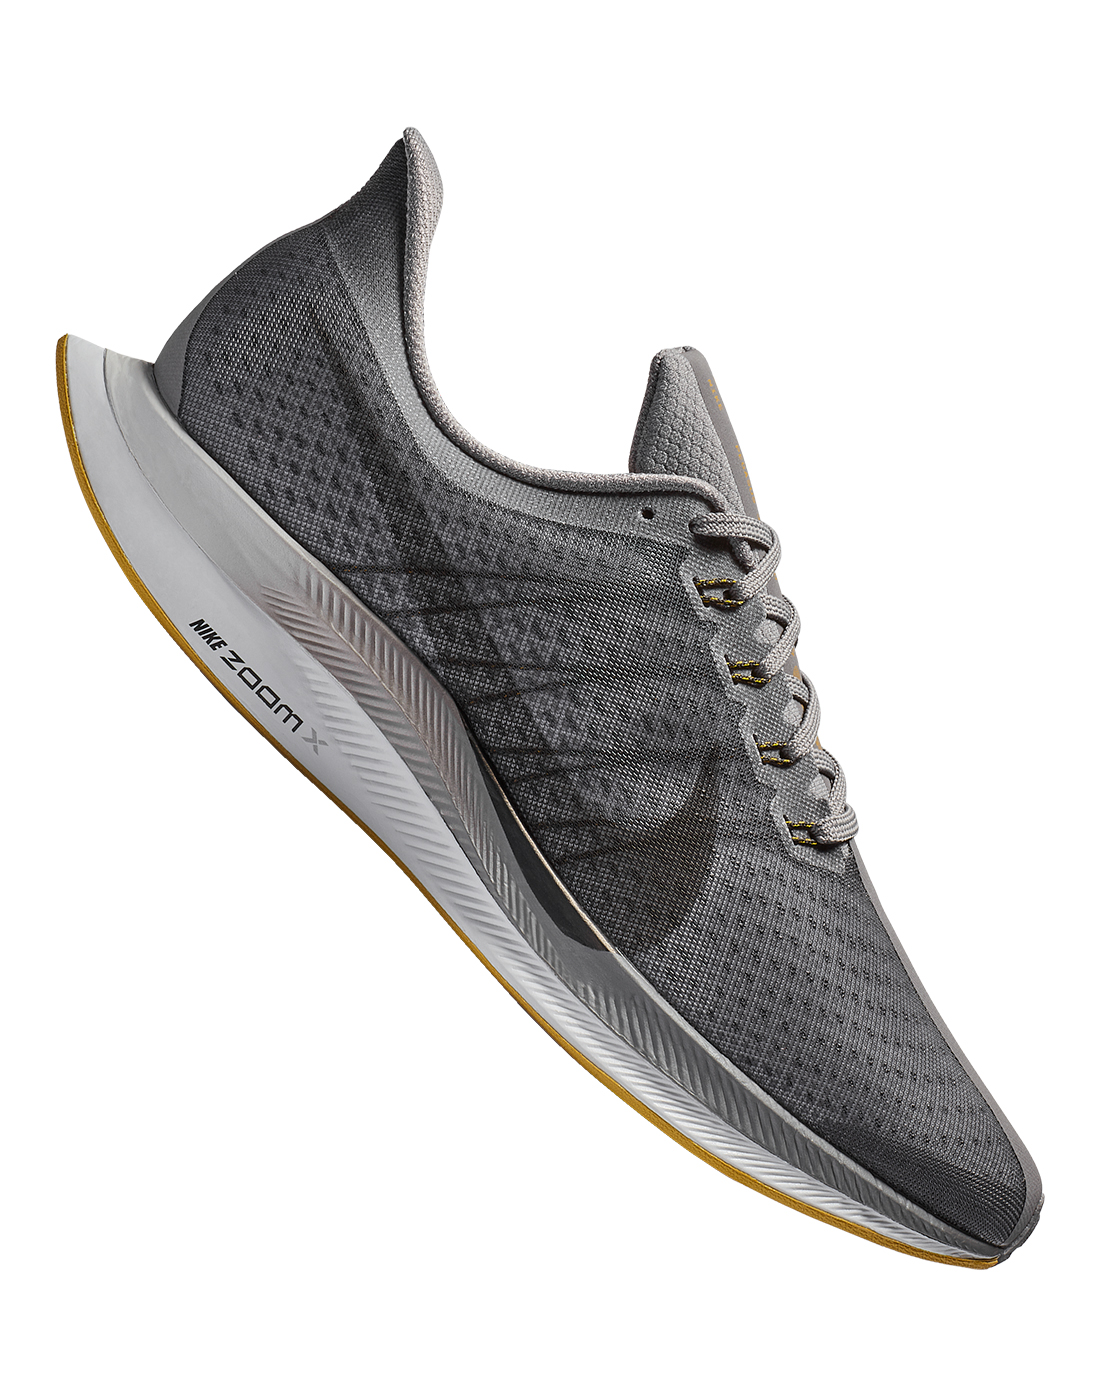 9c6655a2293f6 Men s Grey Nike Pegasus 35 Turbo